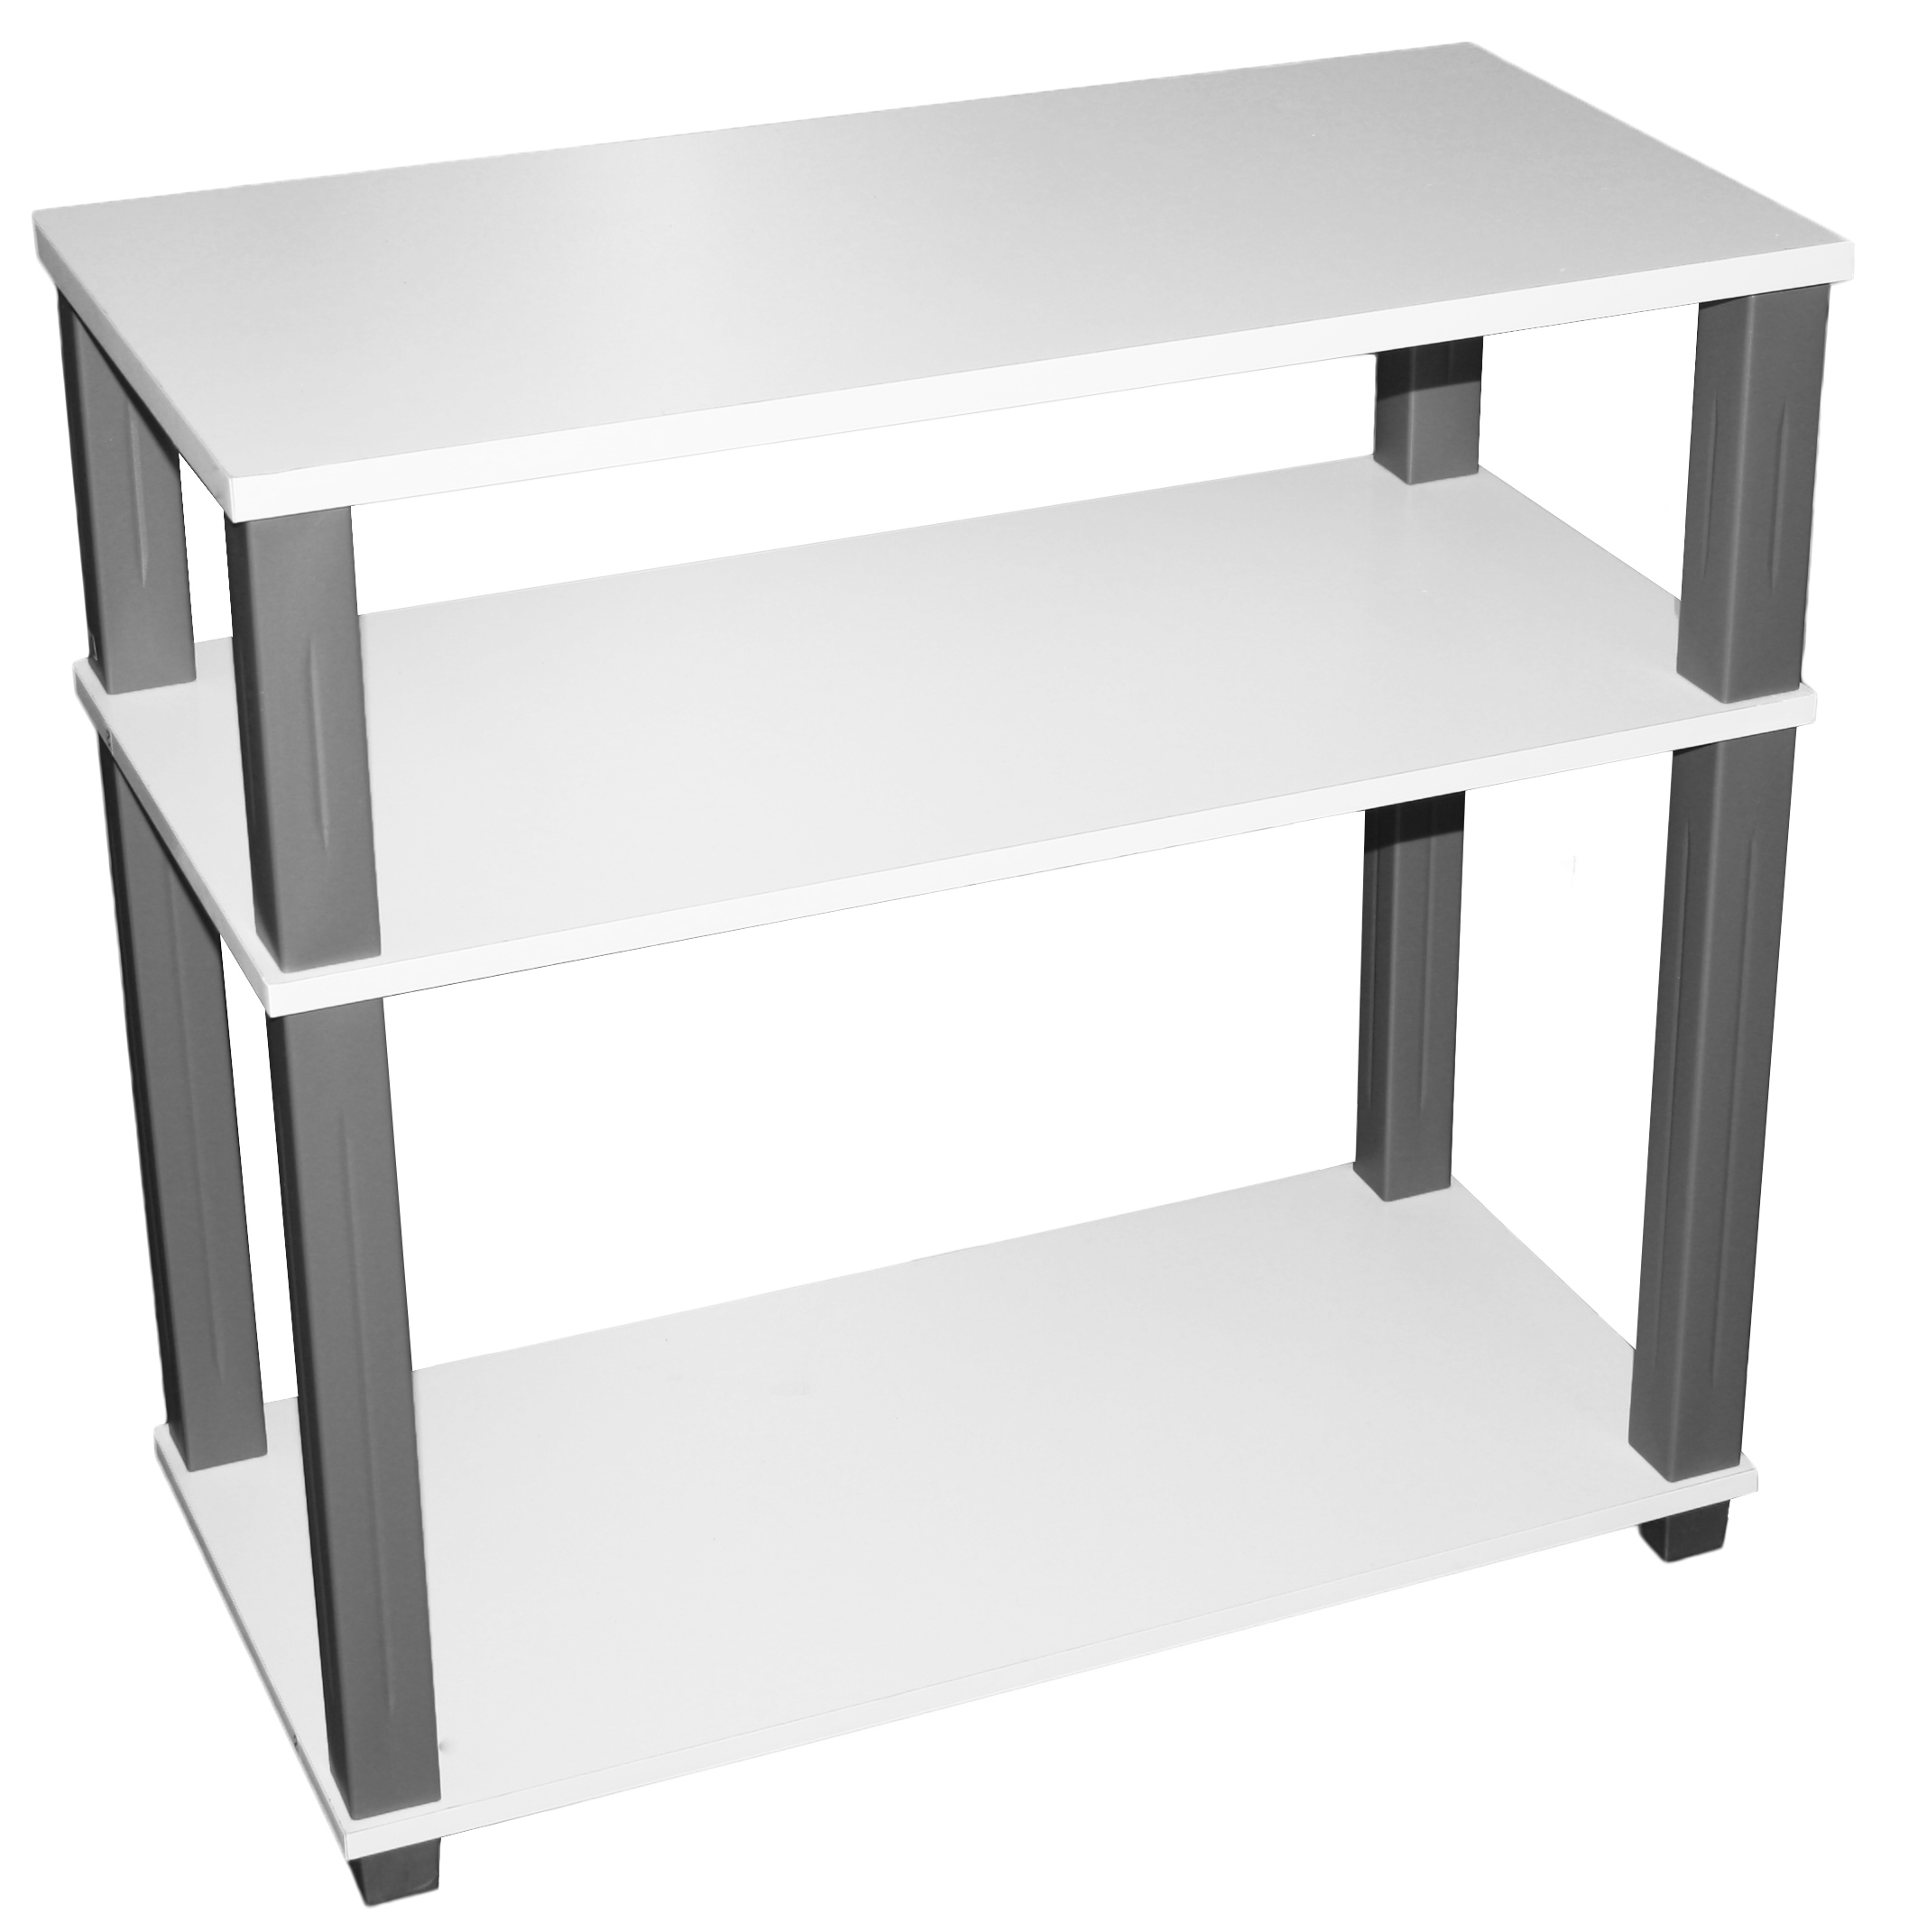 tv rack hifi tisch schrank fernsehtisch media m bel fernsehschrank regal weiss. Black Bedroom Furniture Sets. Home Design Ideas